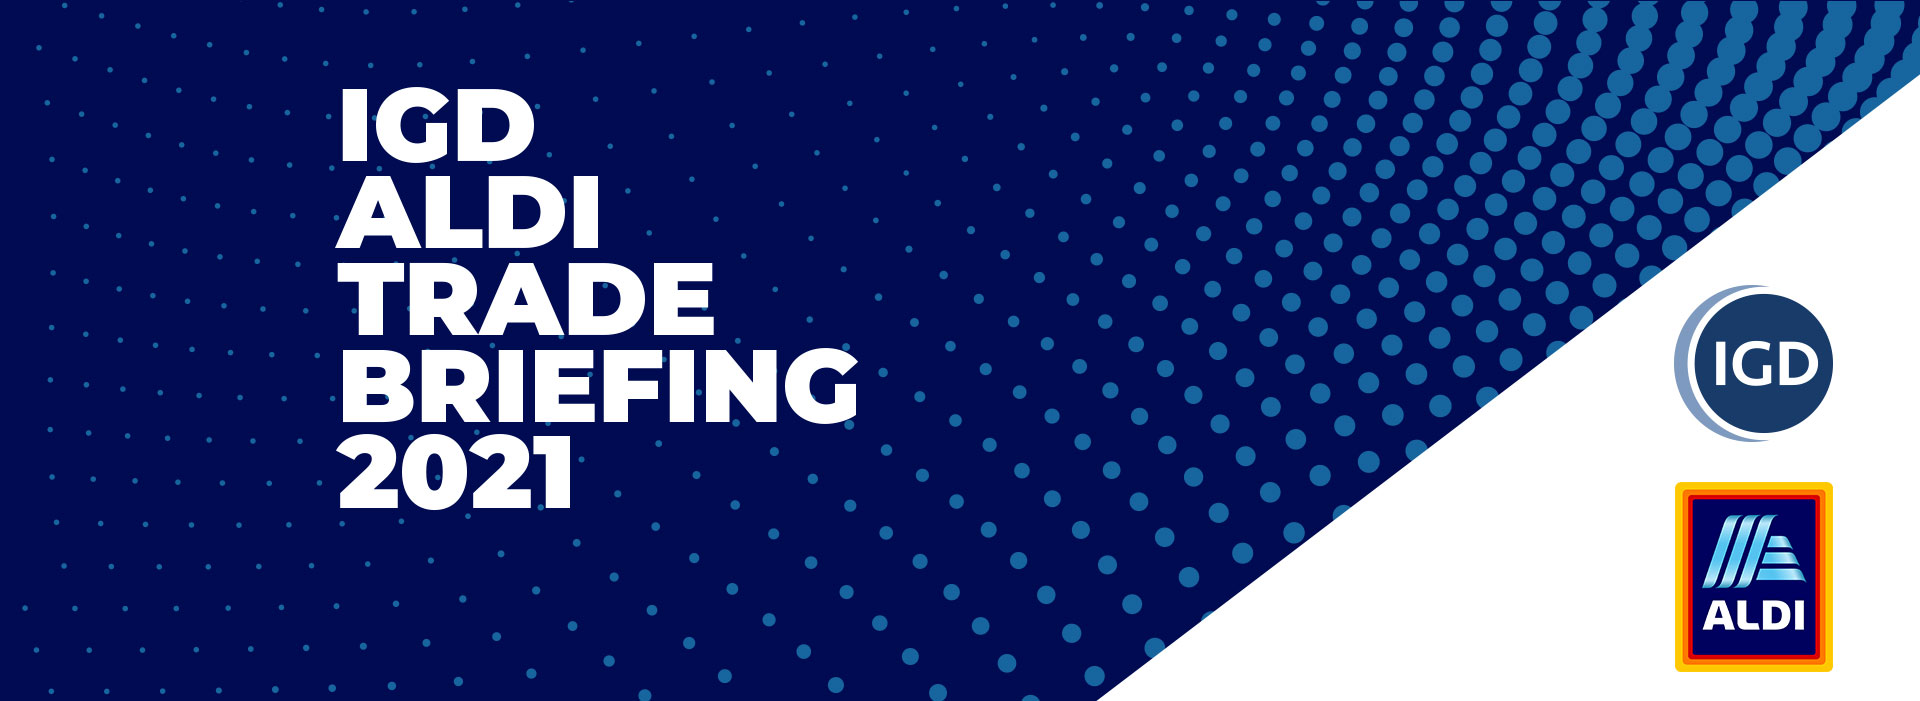 IGD Aldi trade briefing header